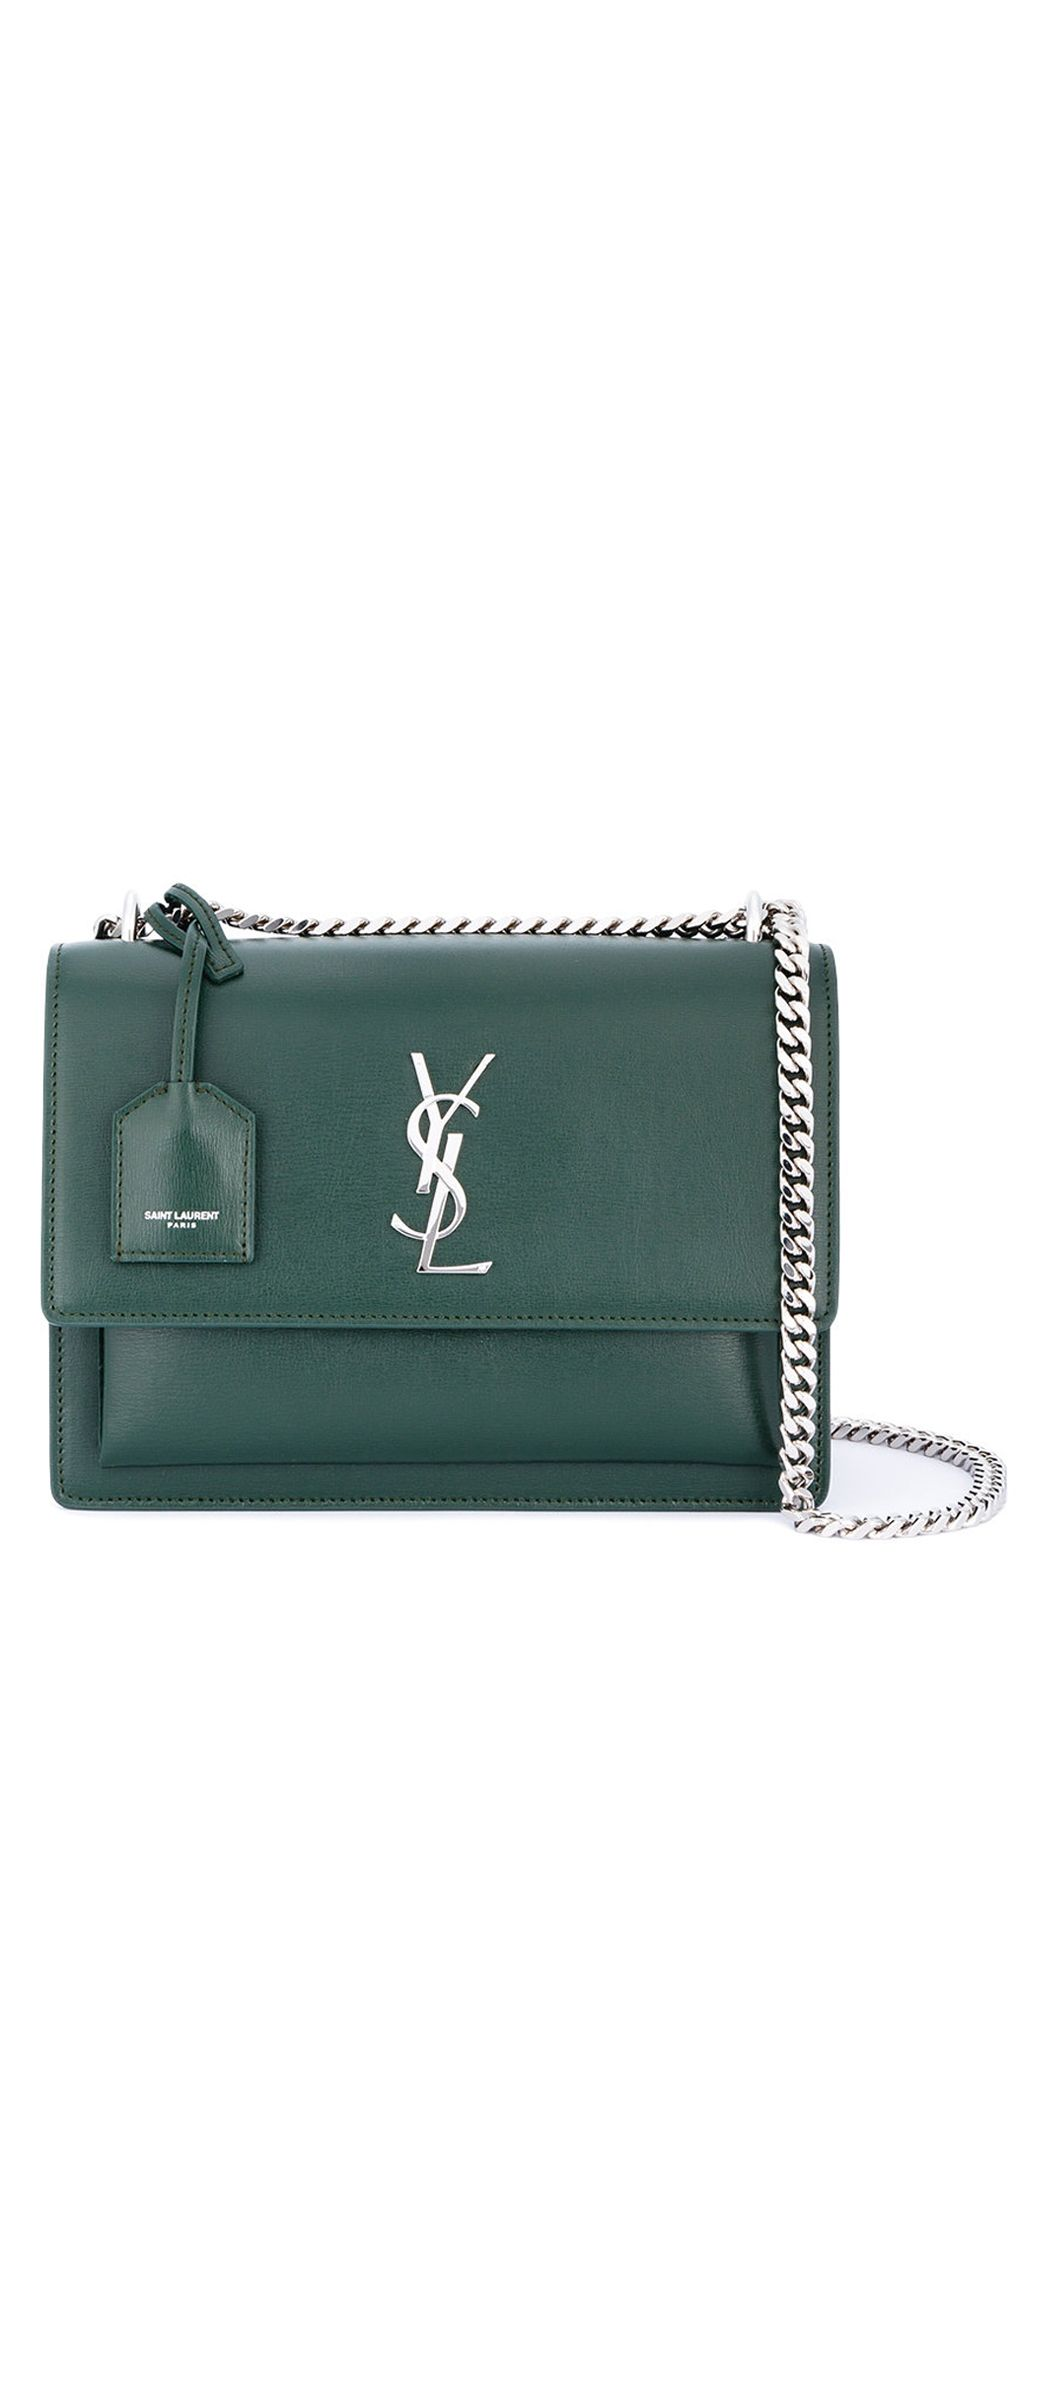 234cdec621f SAINT LAURENT medium Monogramme shoulder bag, explore the latest new season  arrivals on Farfetch now.